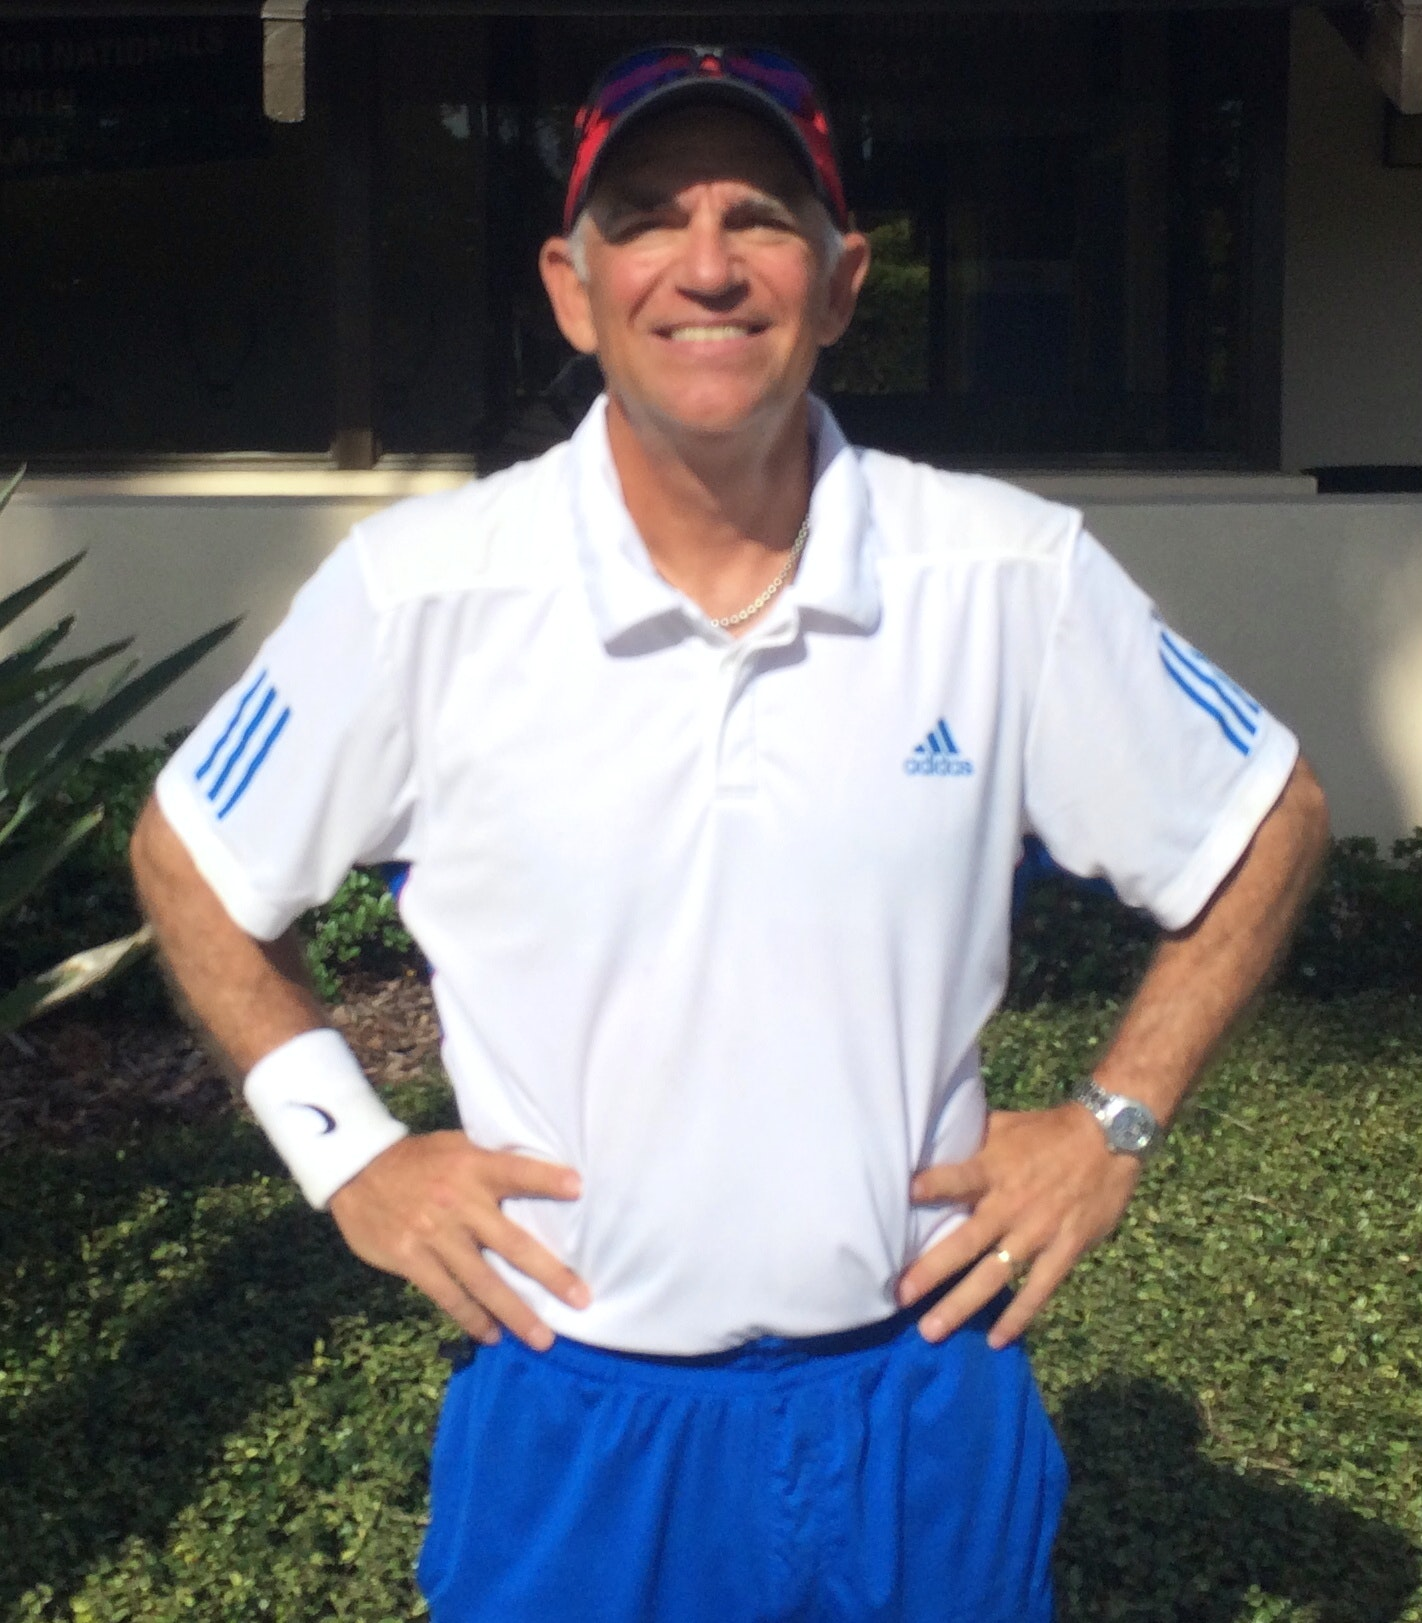 William R. teaches tennis lessons in Pinellas Park, FL